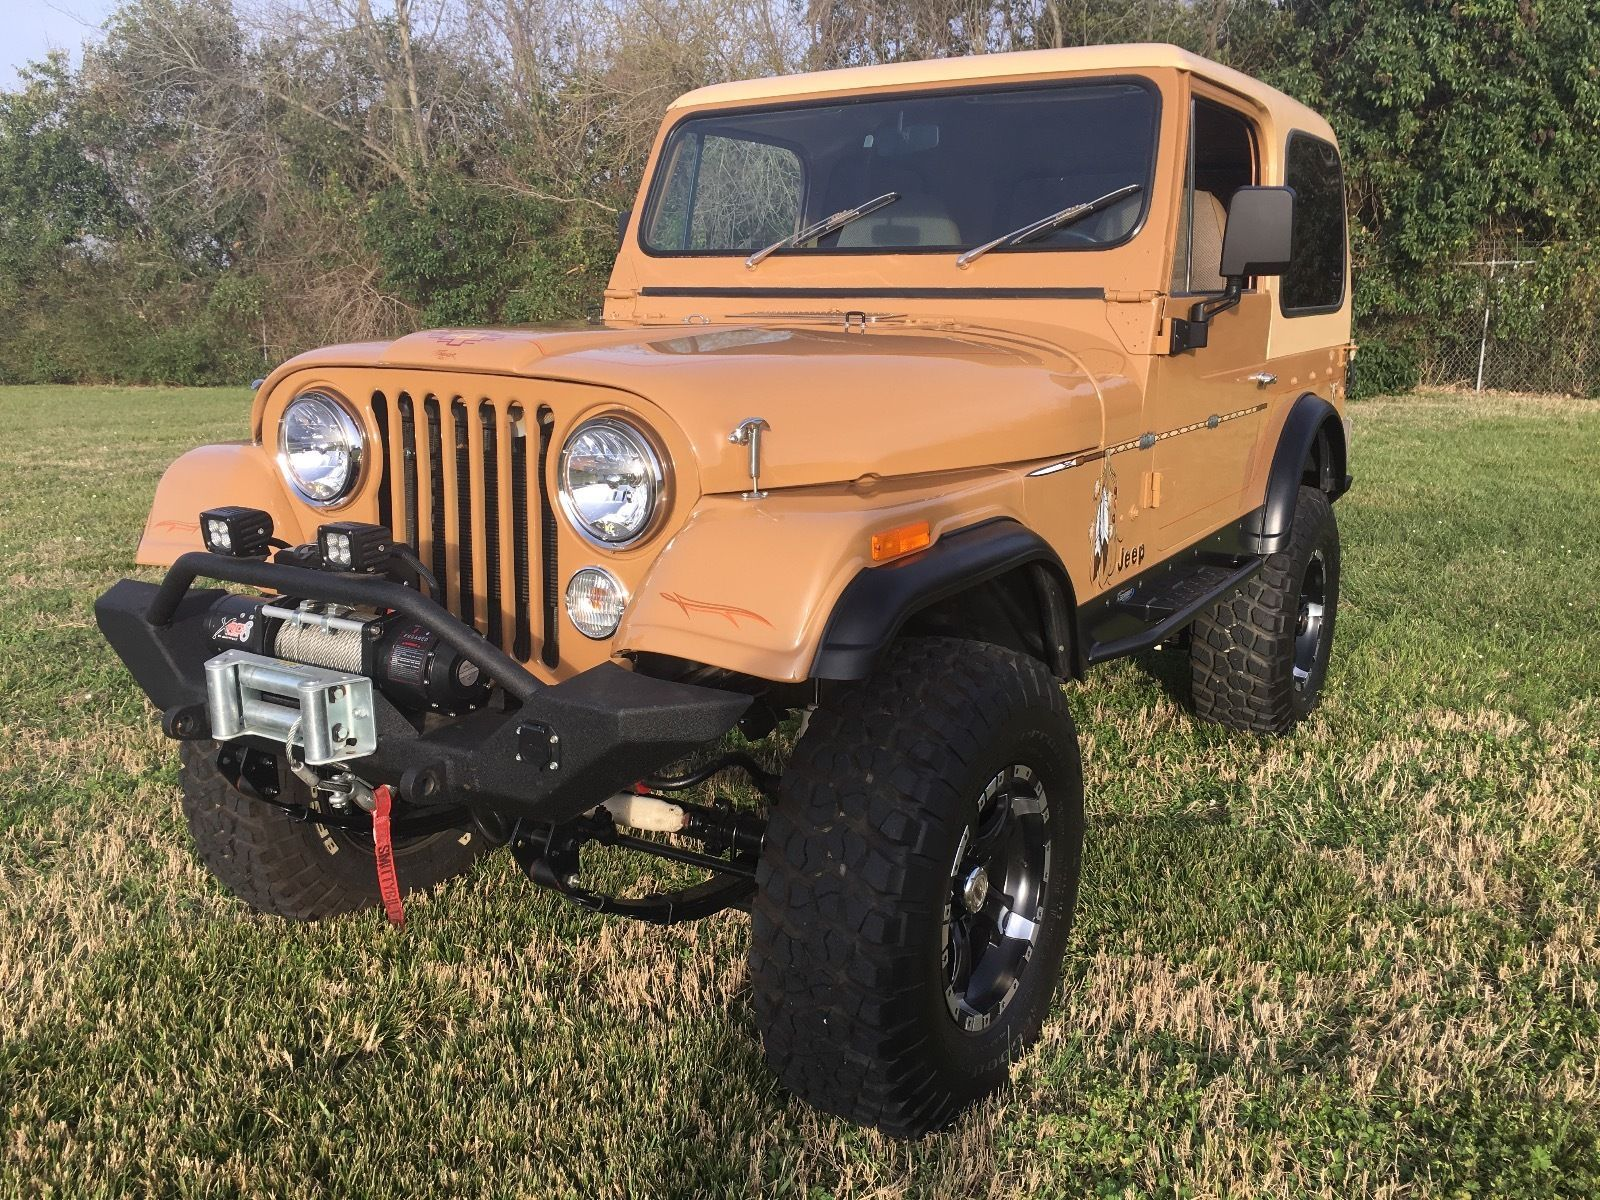 Restored 1978 Jeep CJ CJ7 offroad | Offroads for sale | Pinterest